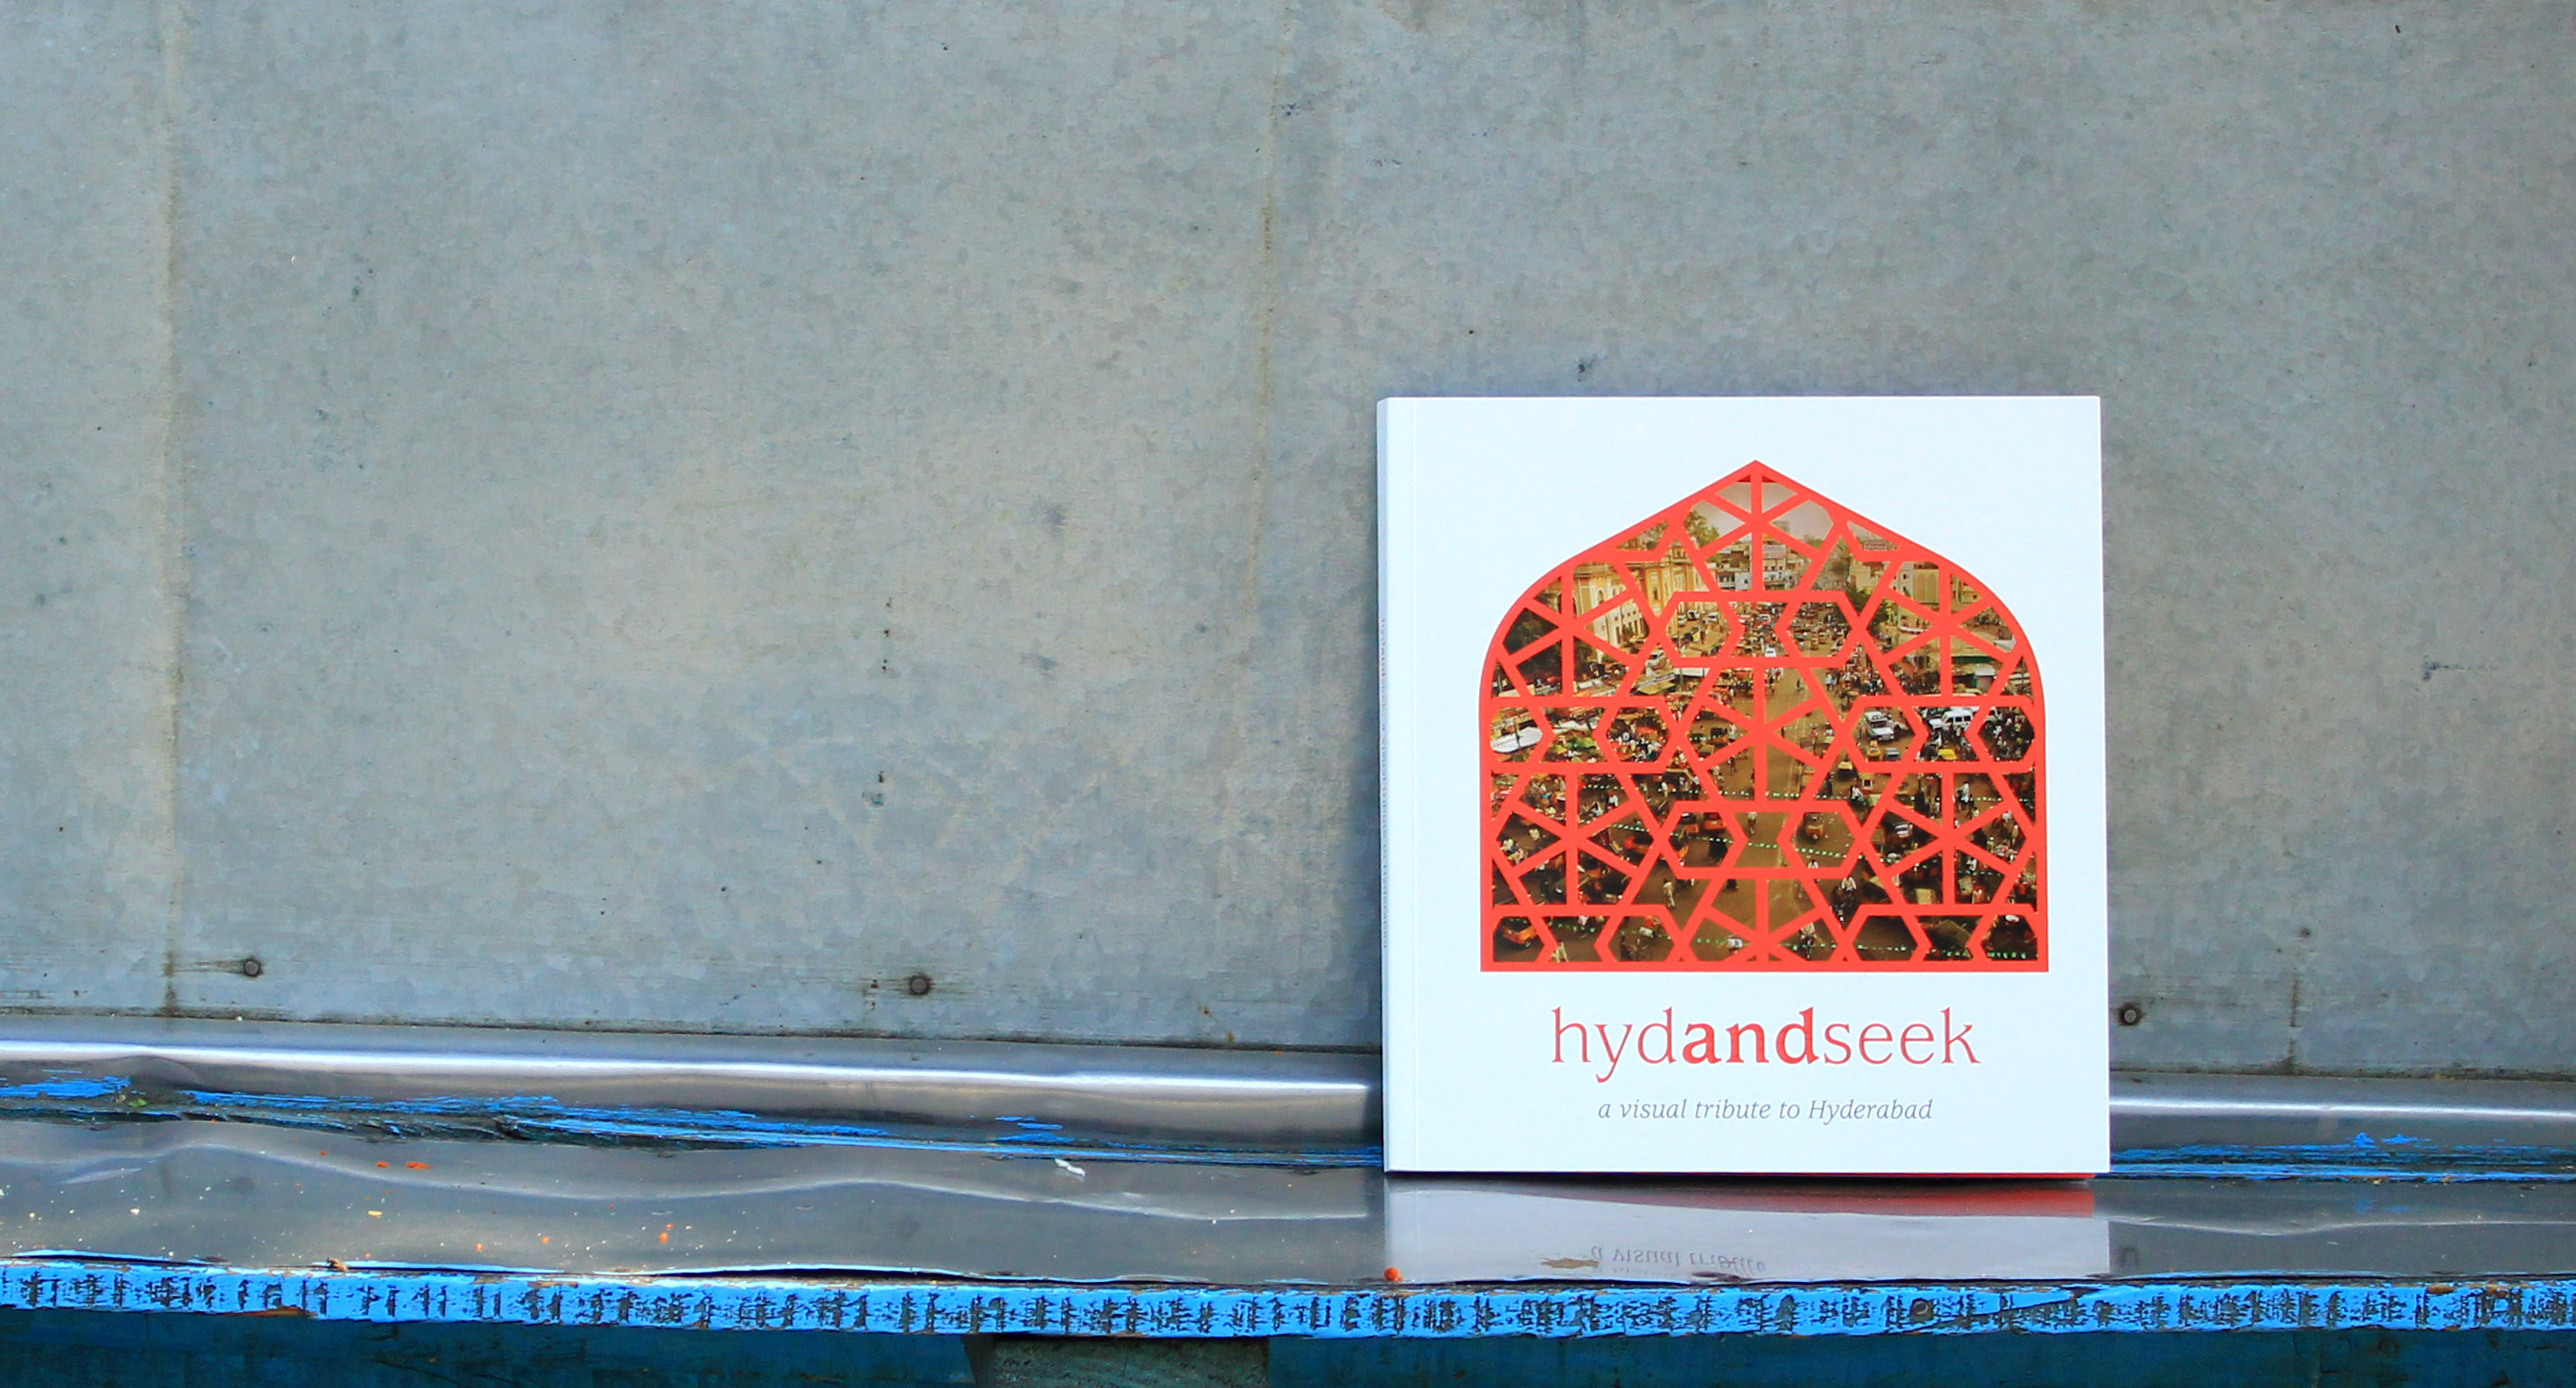 HydandSeek, a visual tribute to Hyderabad, Bluepencil Infodesign, 2016 • Photos: Ragini Siruguri / Bluepencil Infodesign